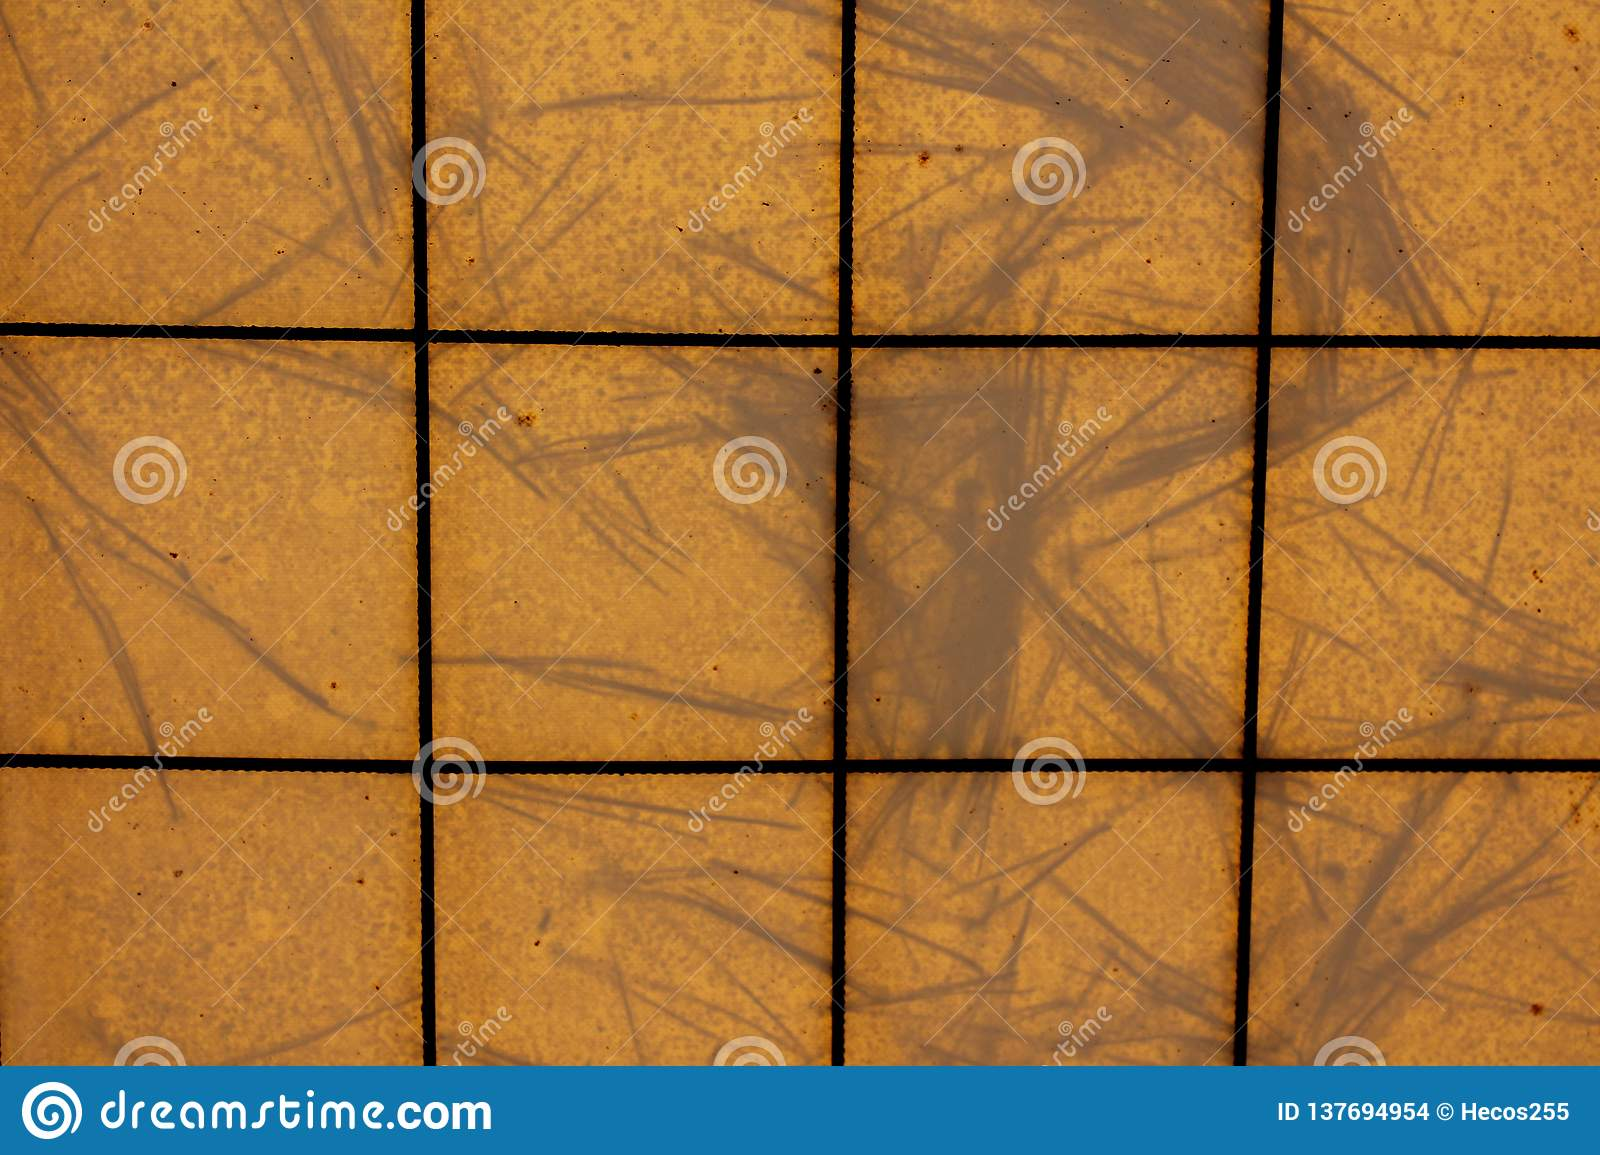 Background texture pattern made of dark metal wires and yellow tarpaulin with pine needles on top all shaped like yellow tiles